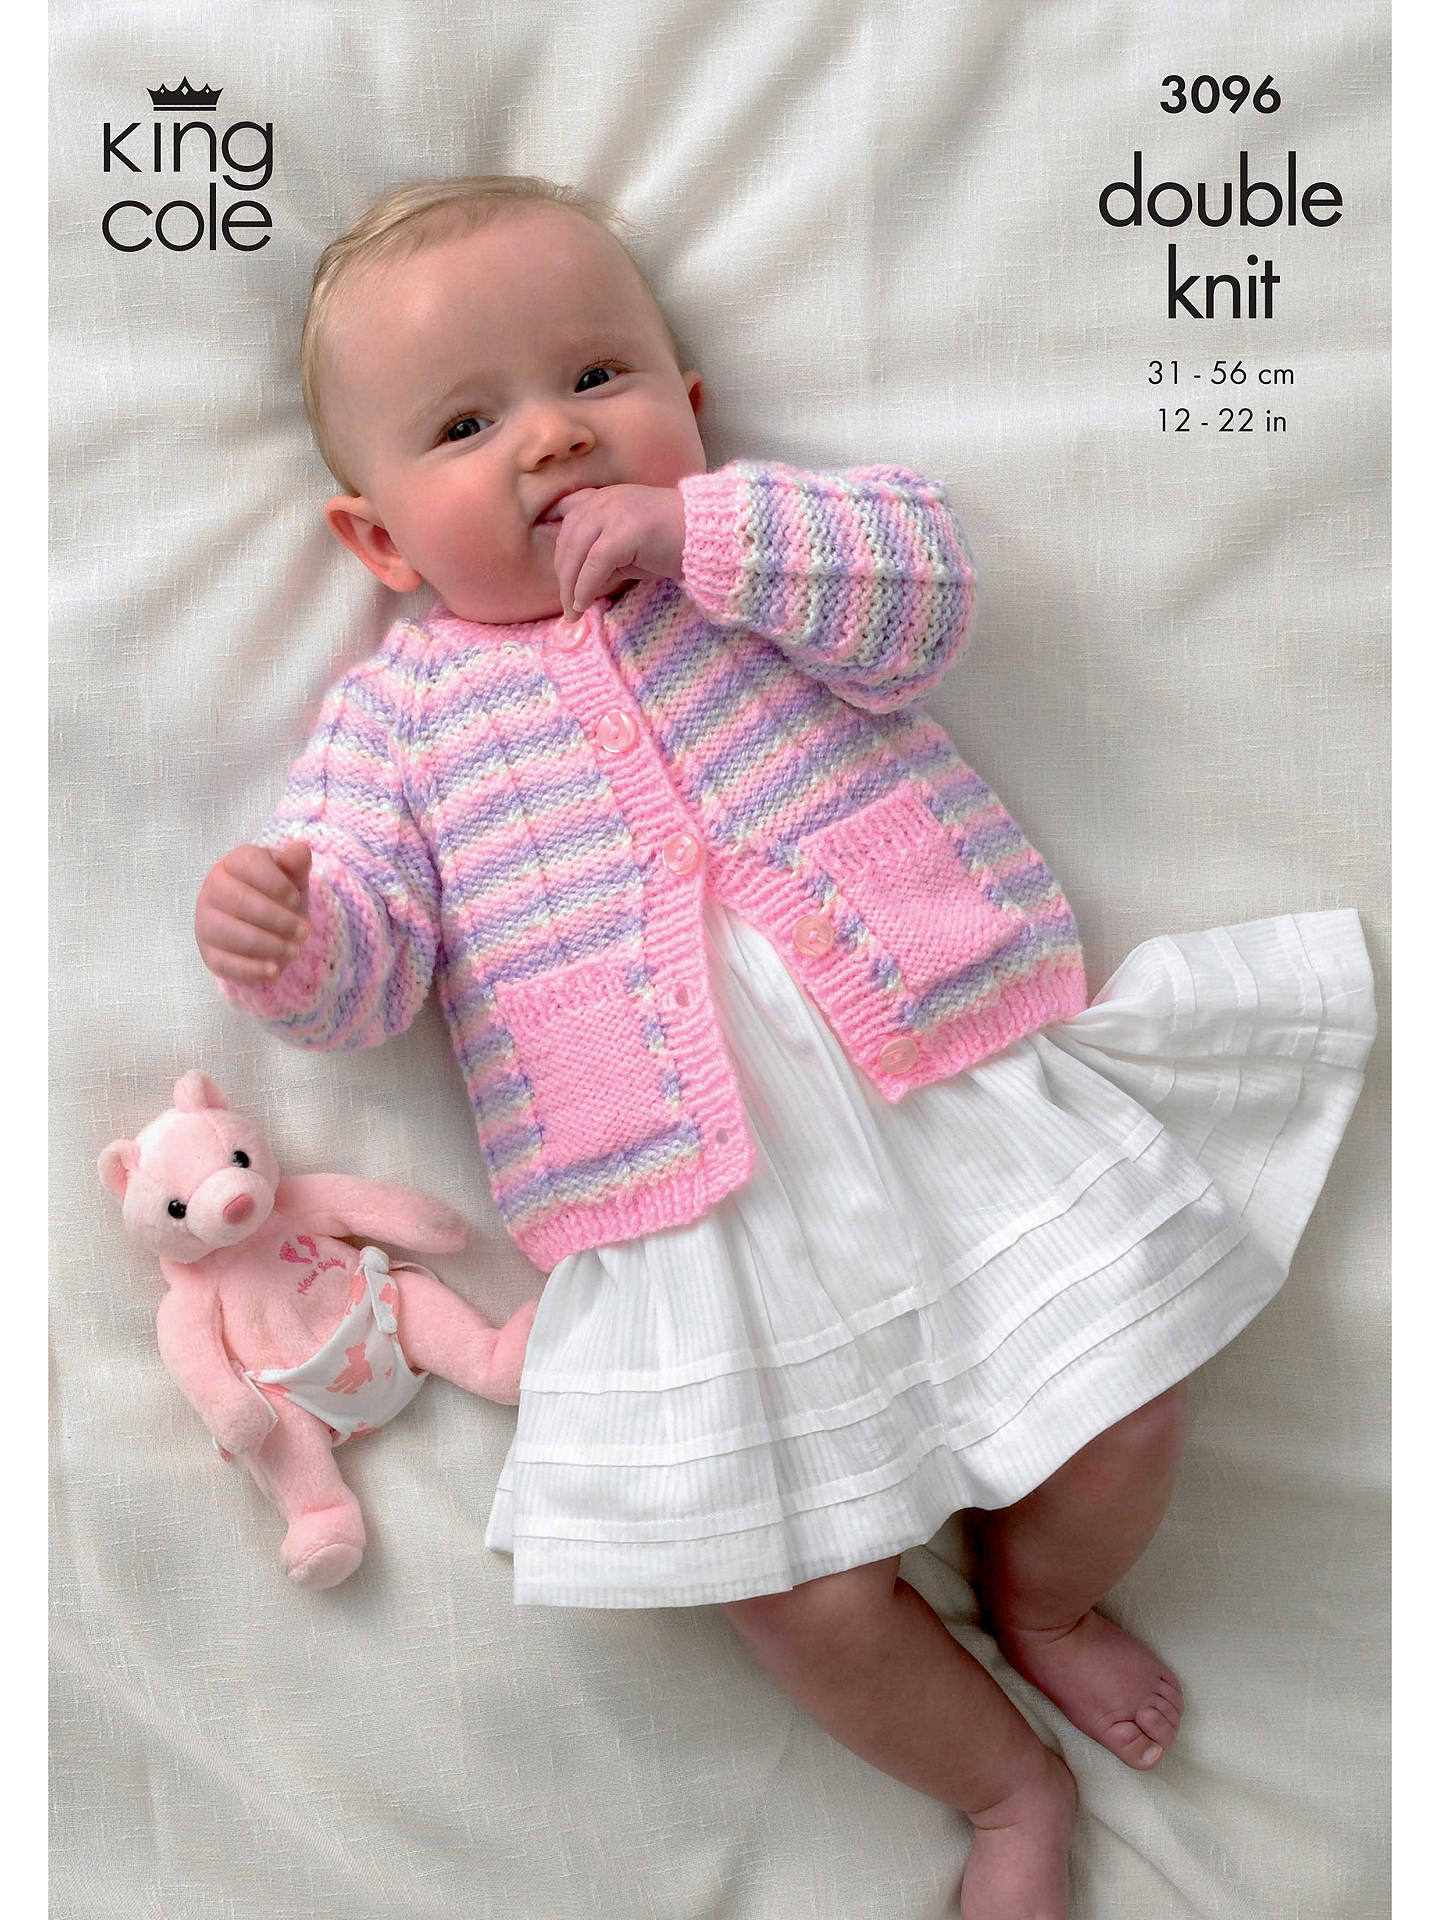 f85c38209 King Cole Big Value Baby DK Cardigan and Accessories Knitting Pattern, 3096